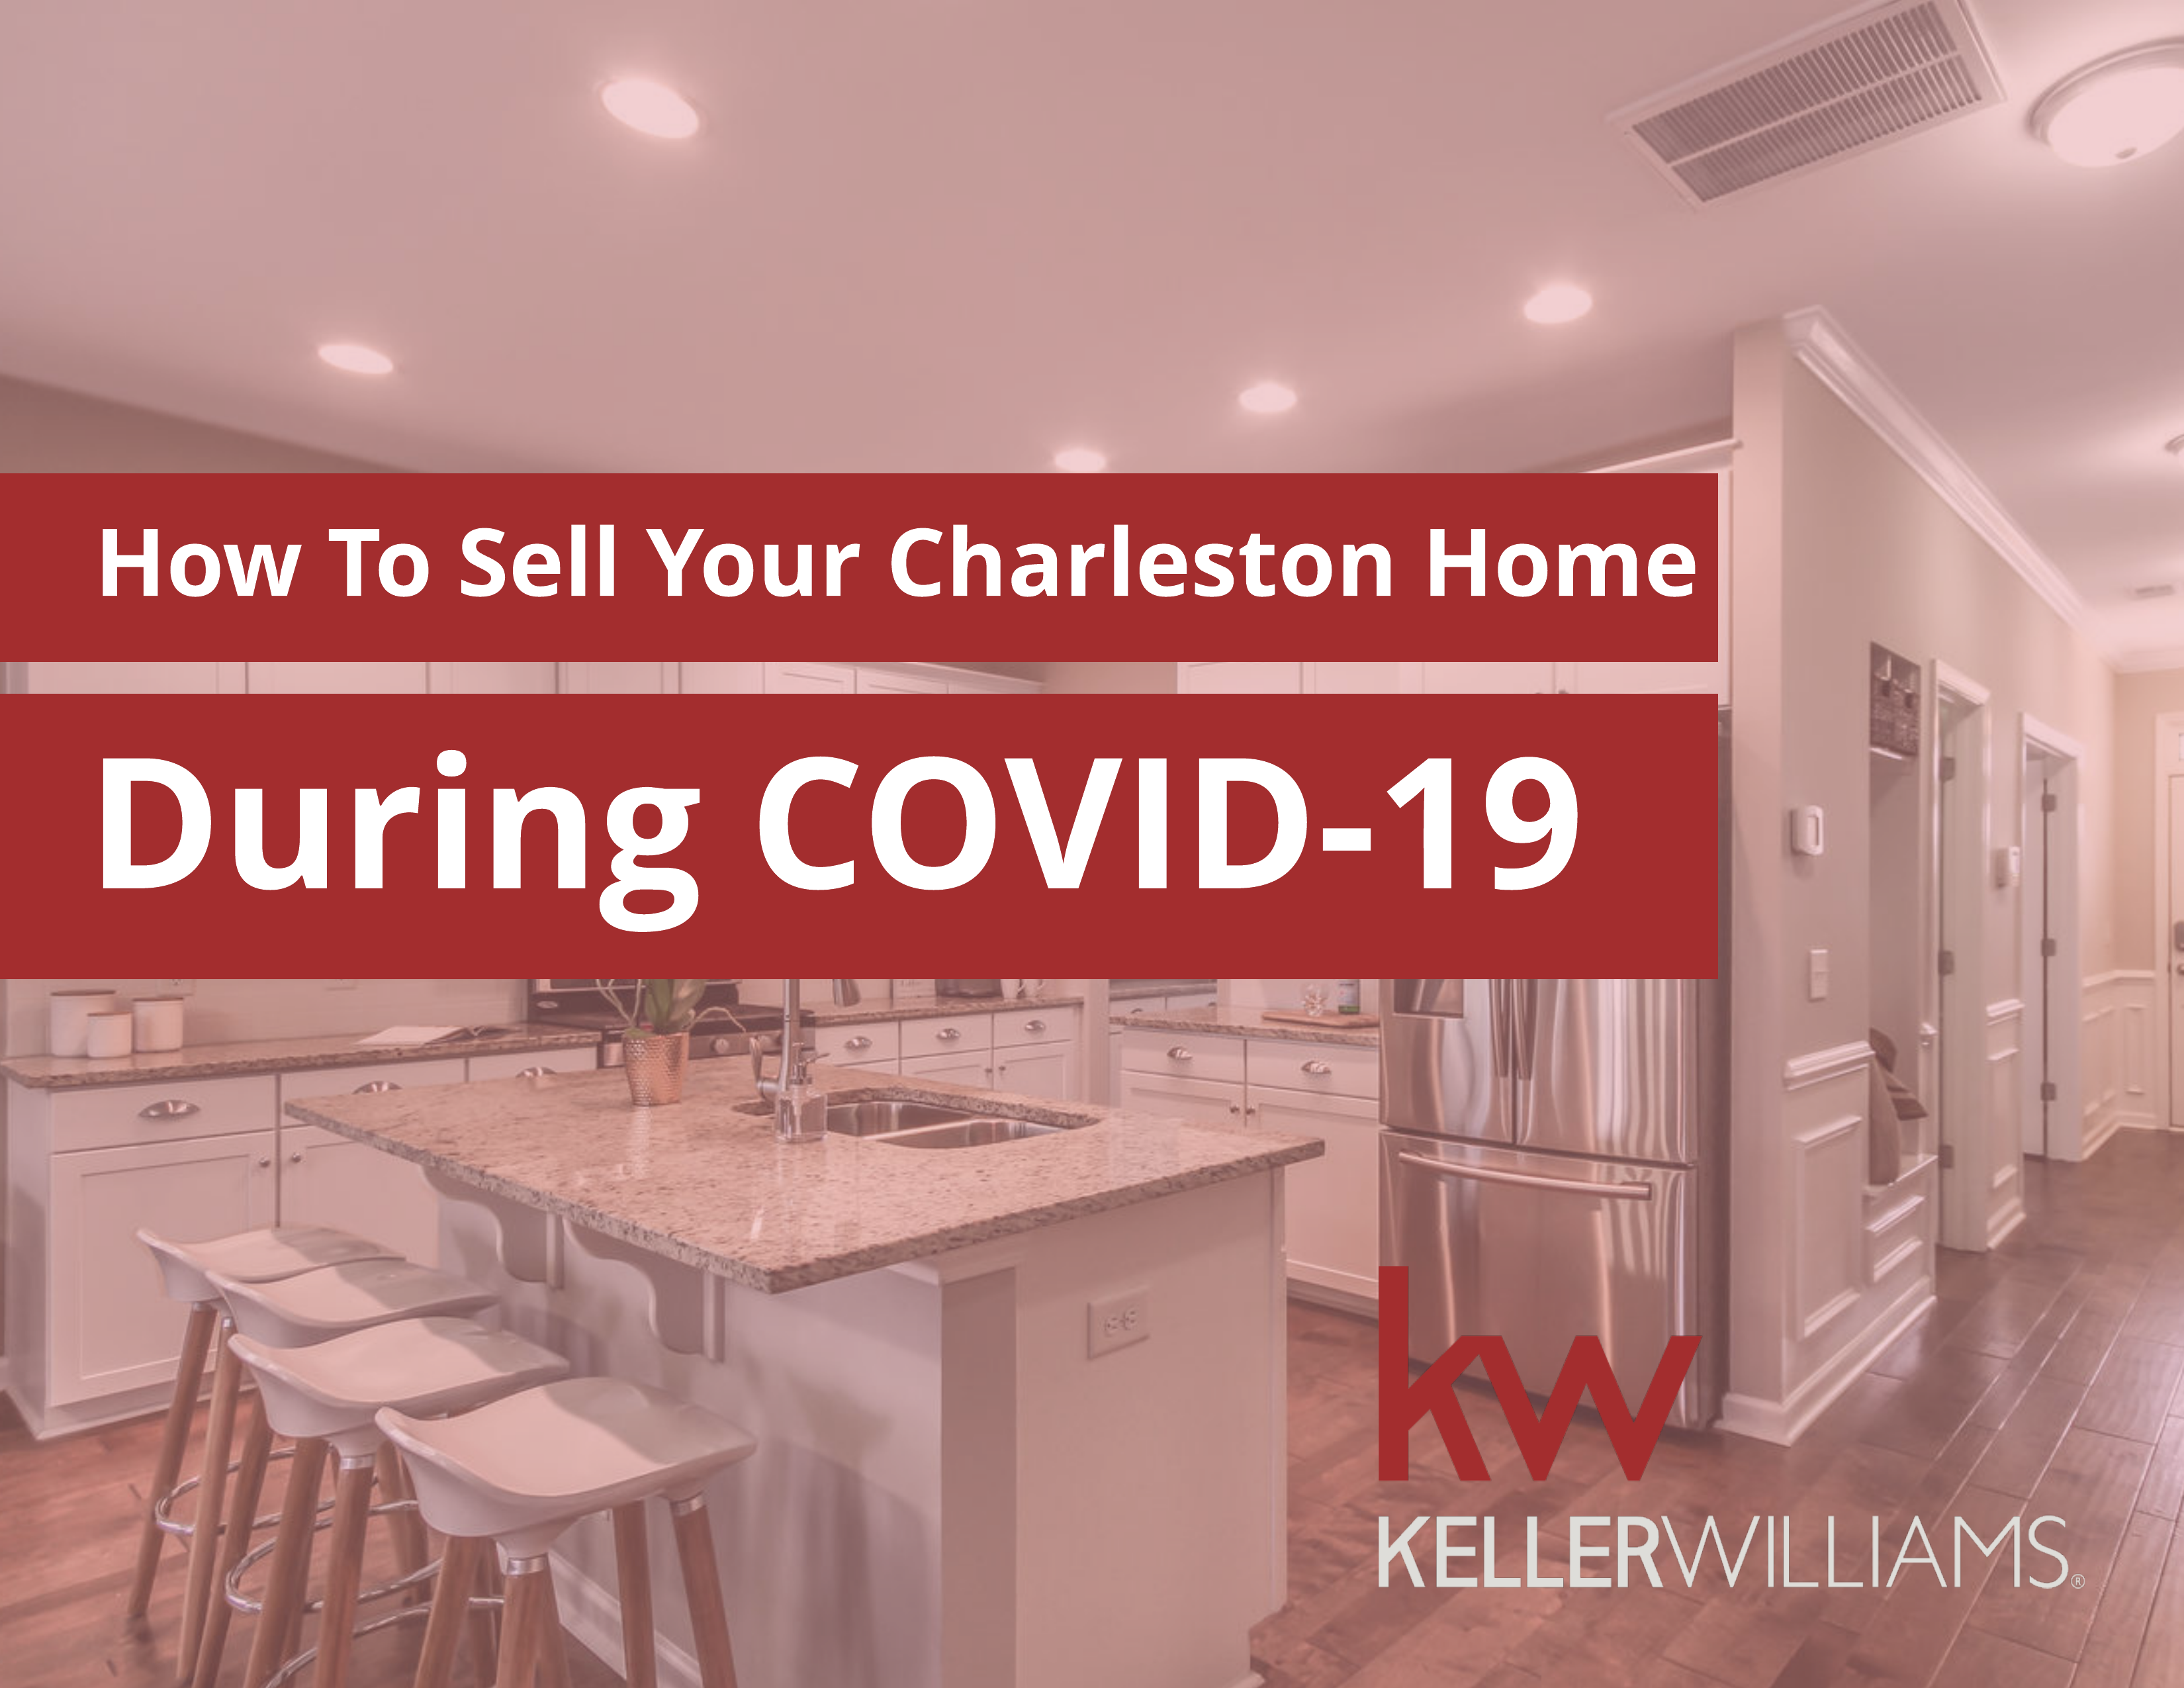 Sell Your Charleston Home During COVID-19